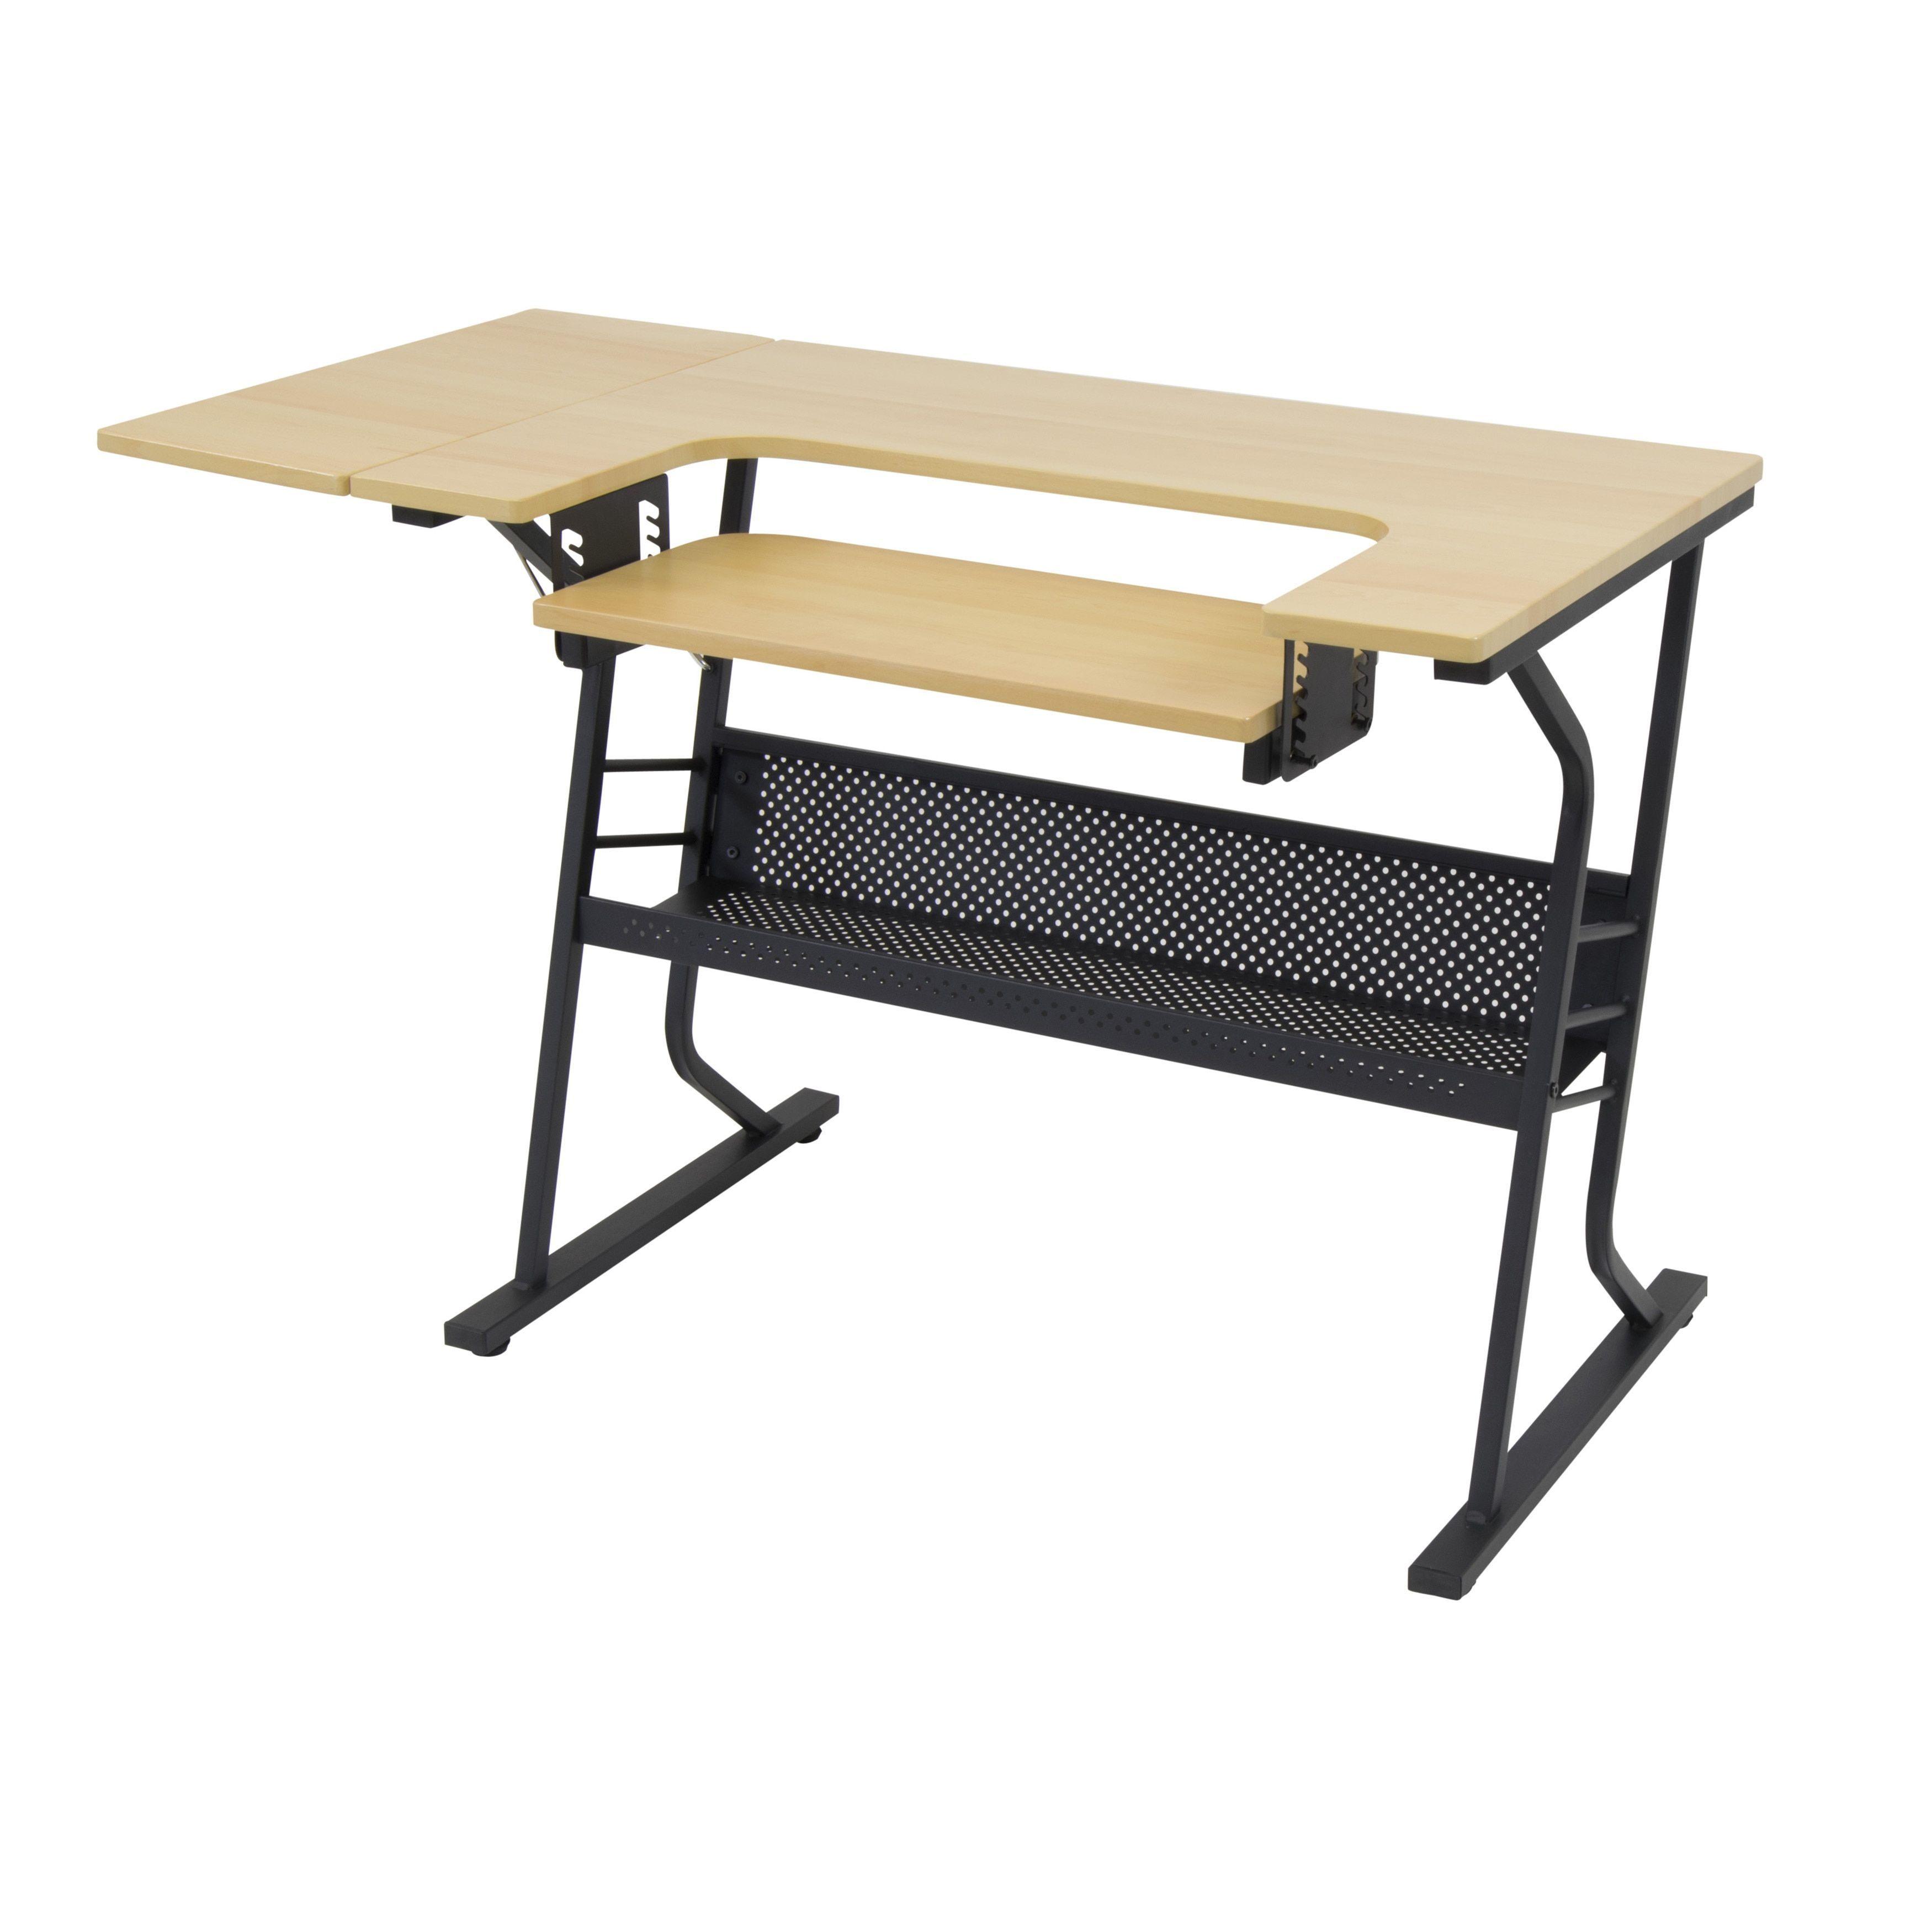 42+ Craft sewing machine table ideas in 2021